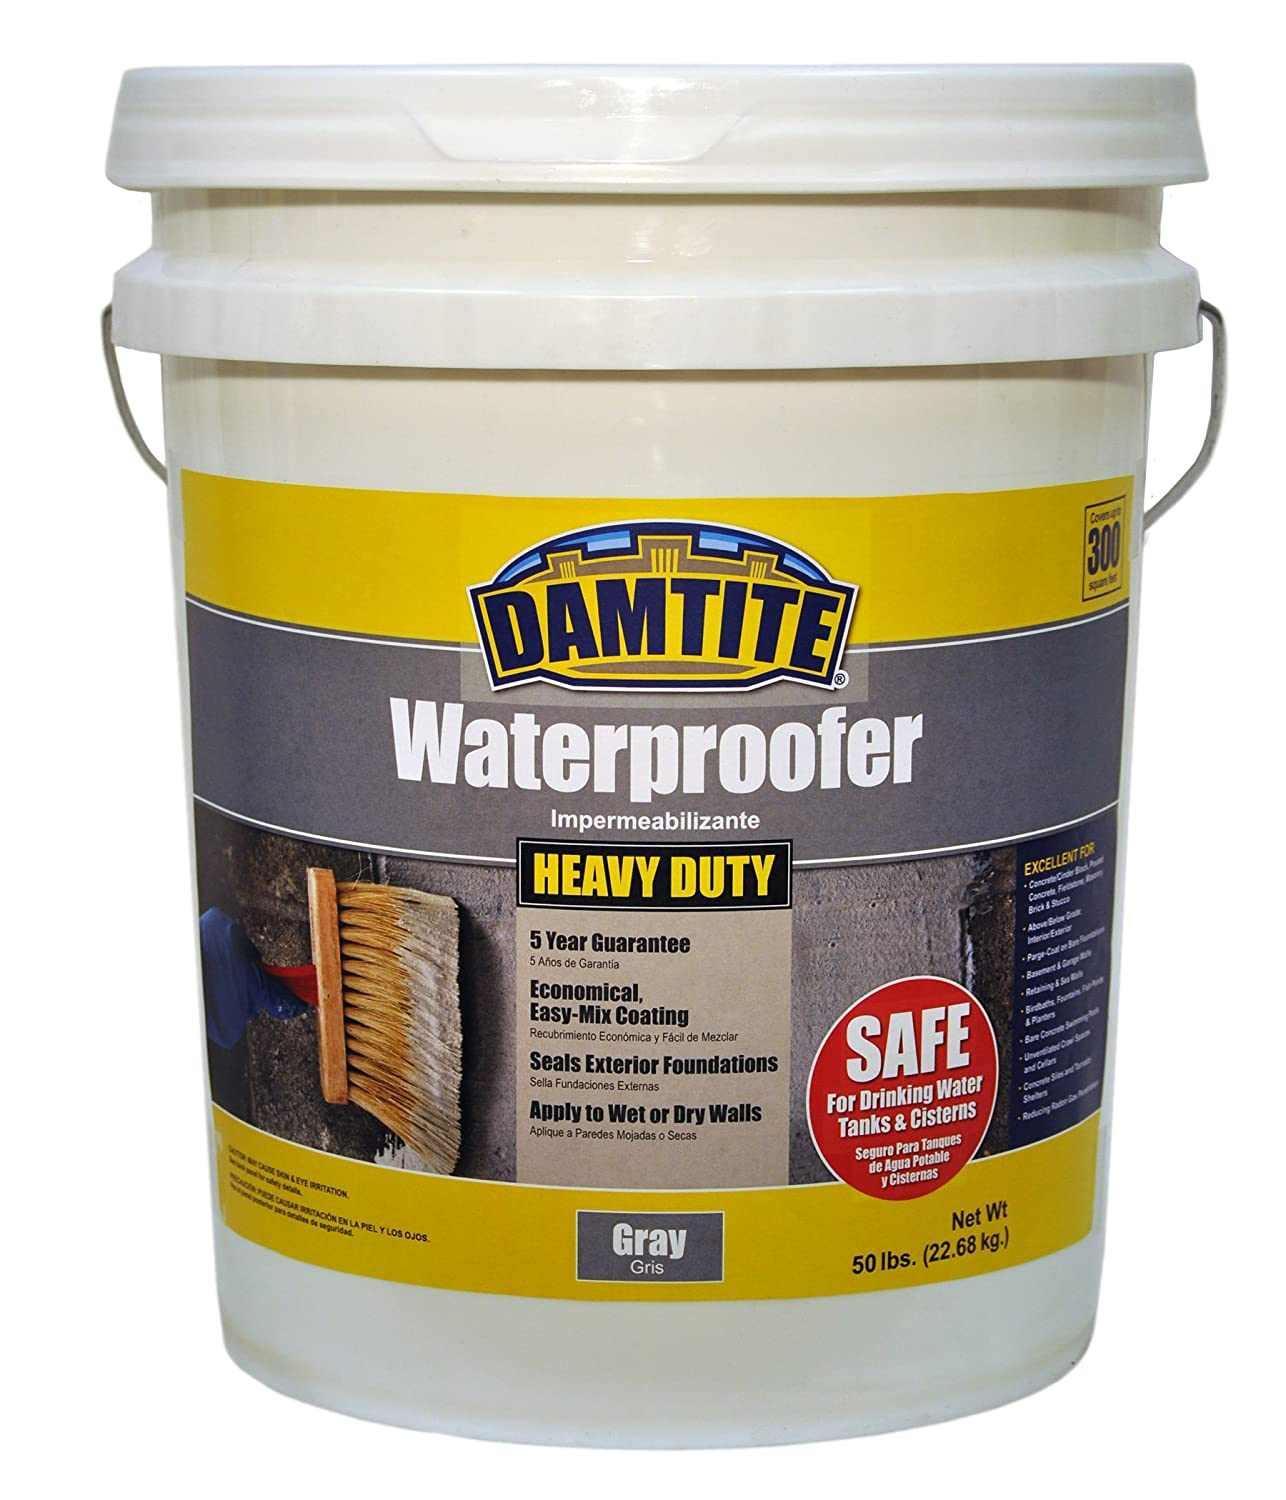 Damtite 02551 Gray Maximum Coverage Powdered Waterproofer, 50 lb. Pail